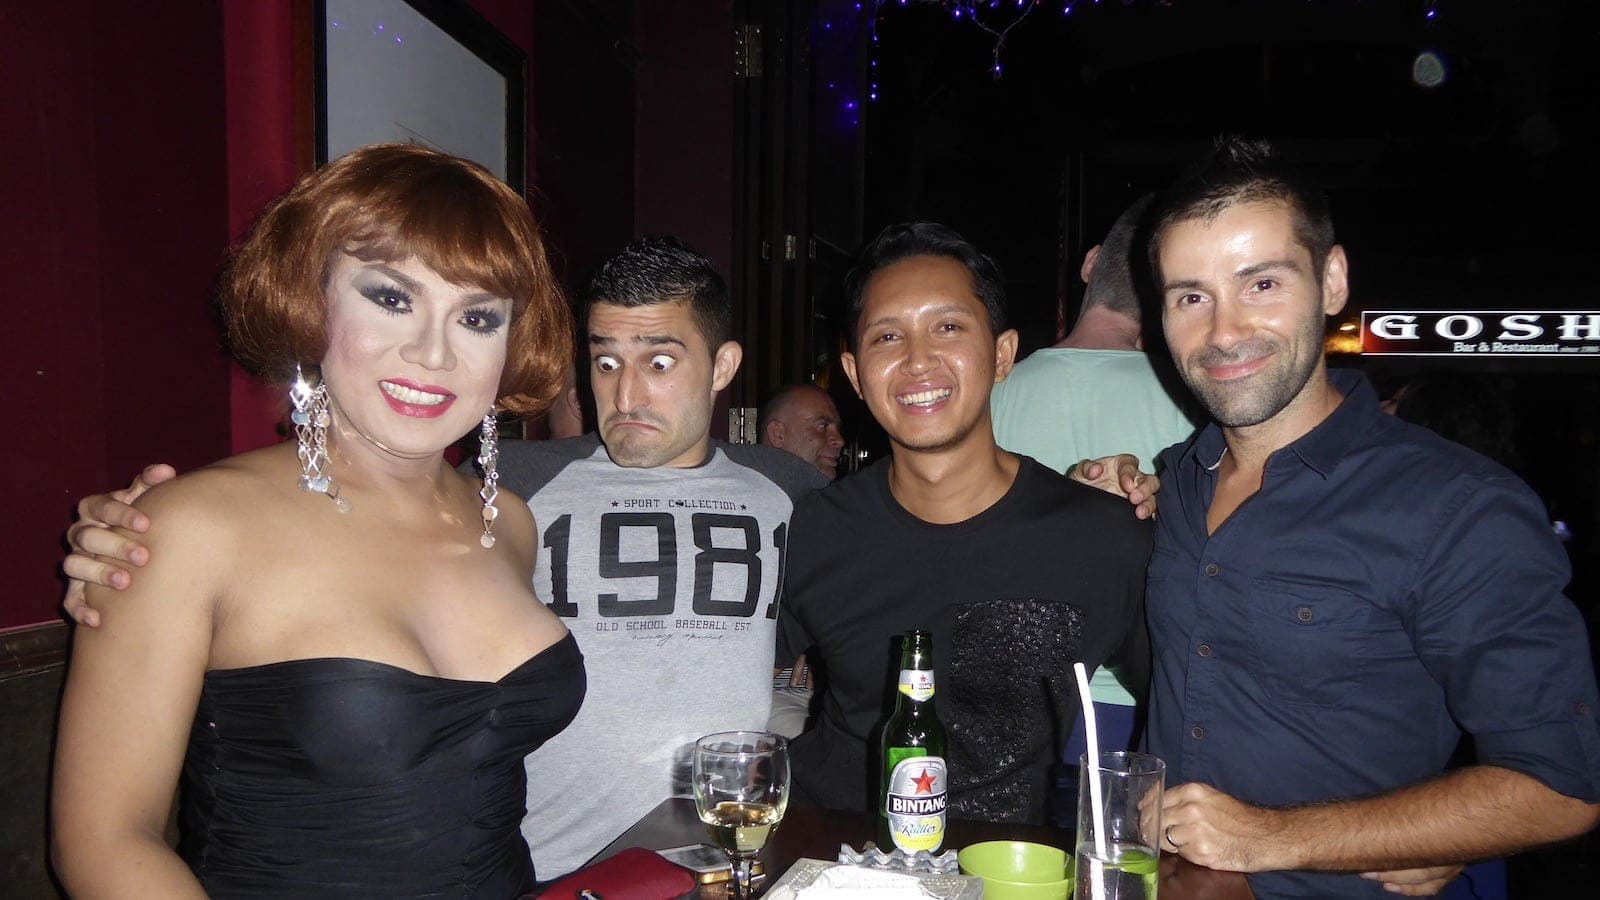 Bali gay scene and gay bars with drag queens